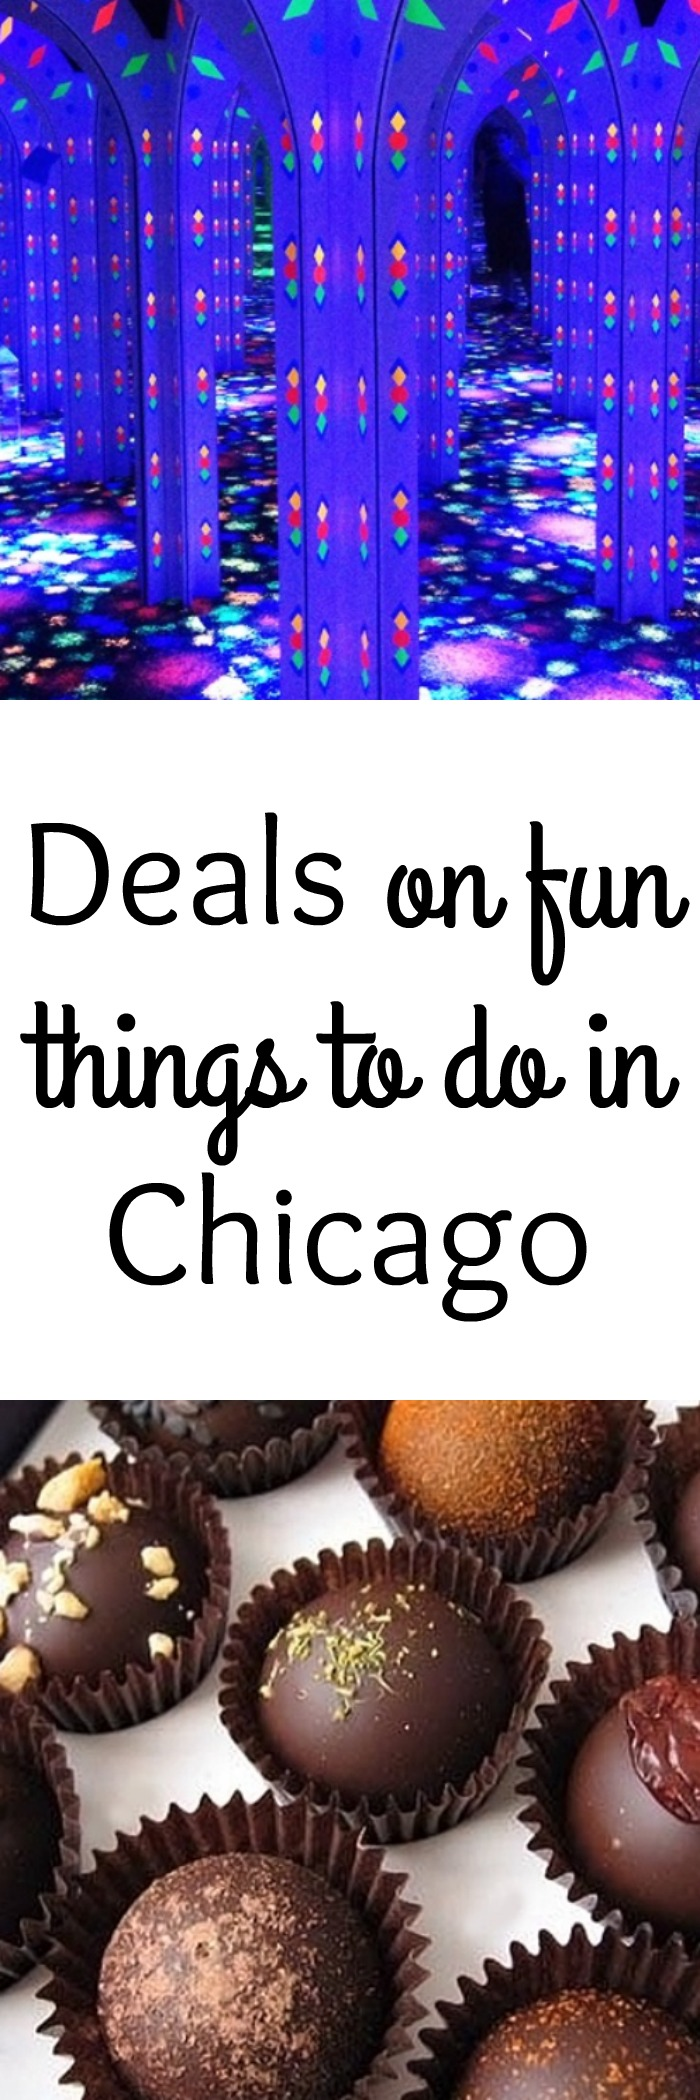 Looking for things to do in Chicago? We have some great deals to help you have fun in Chicago this weekend. Fun doesn't have to break the bank.